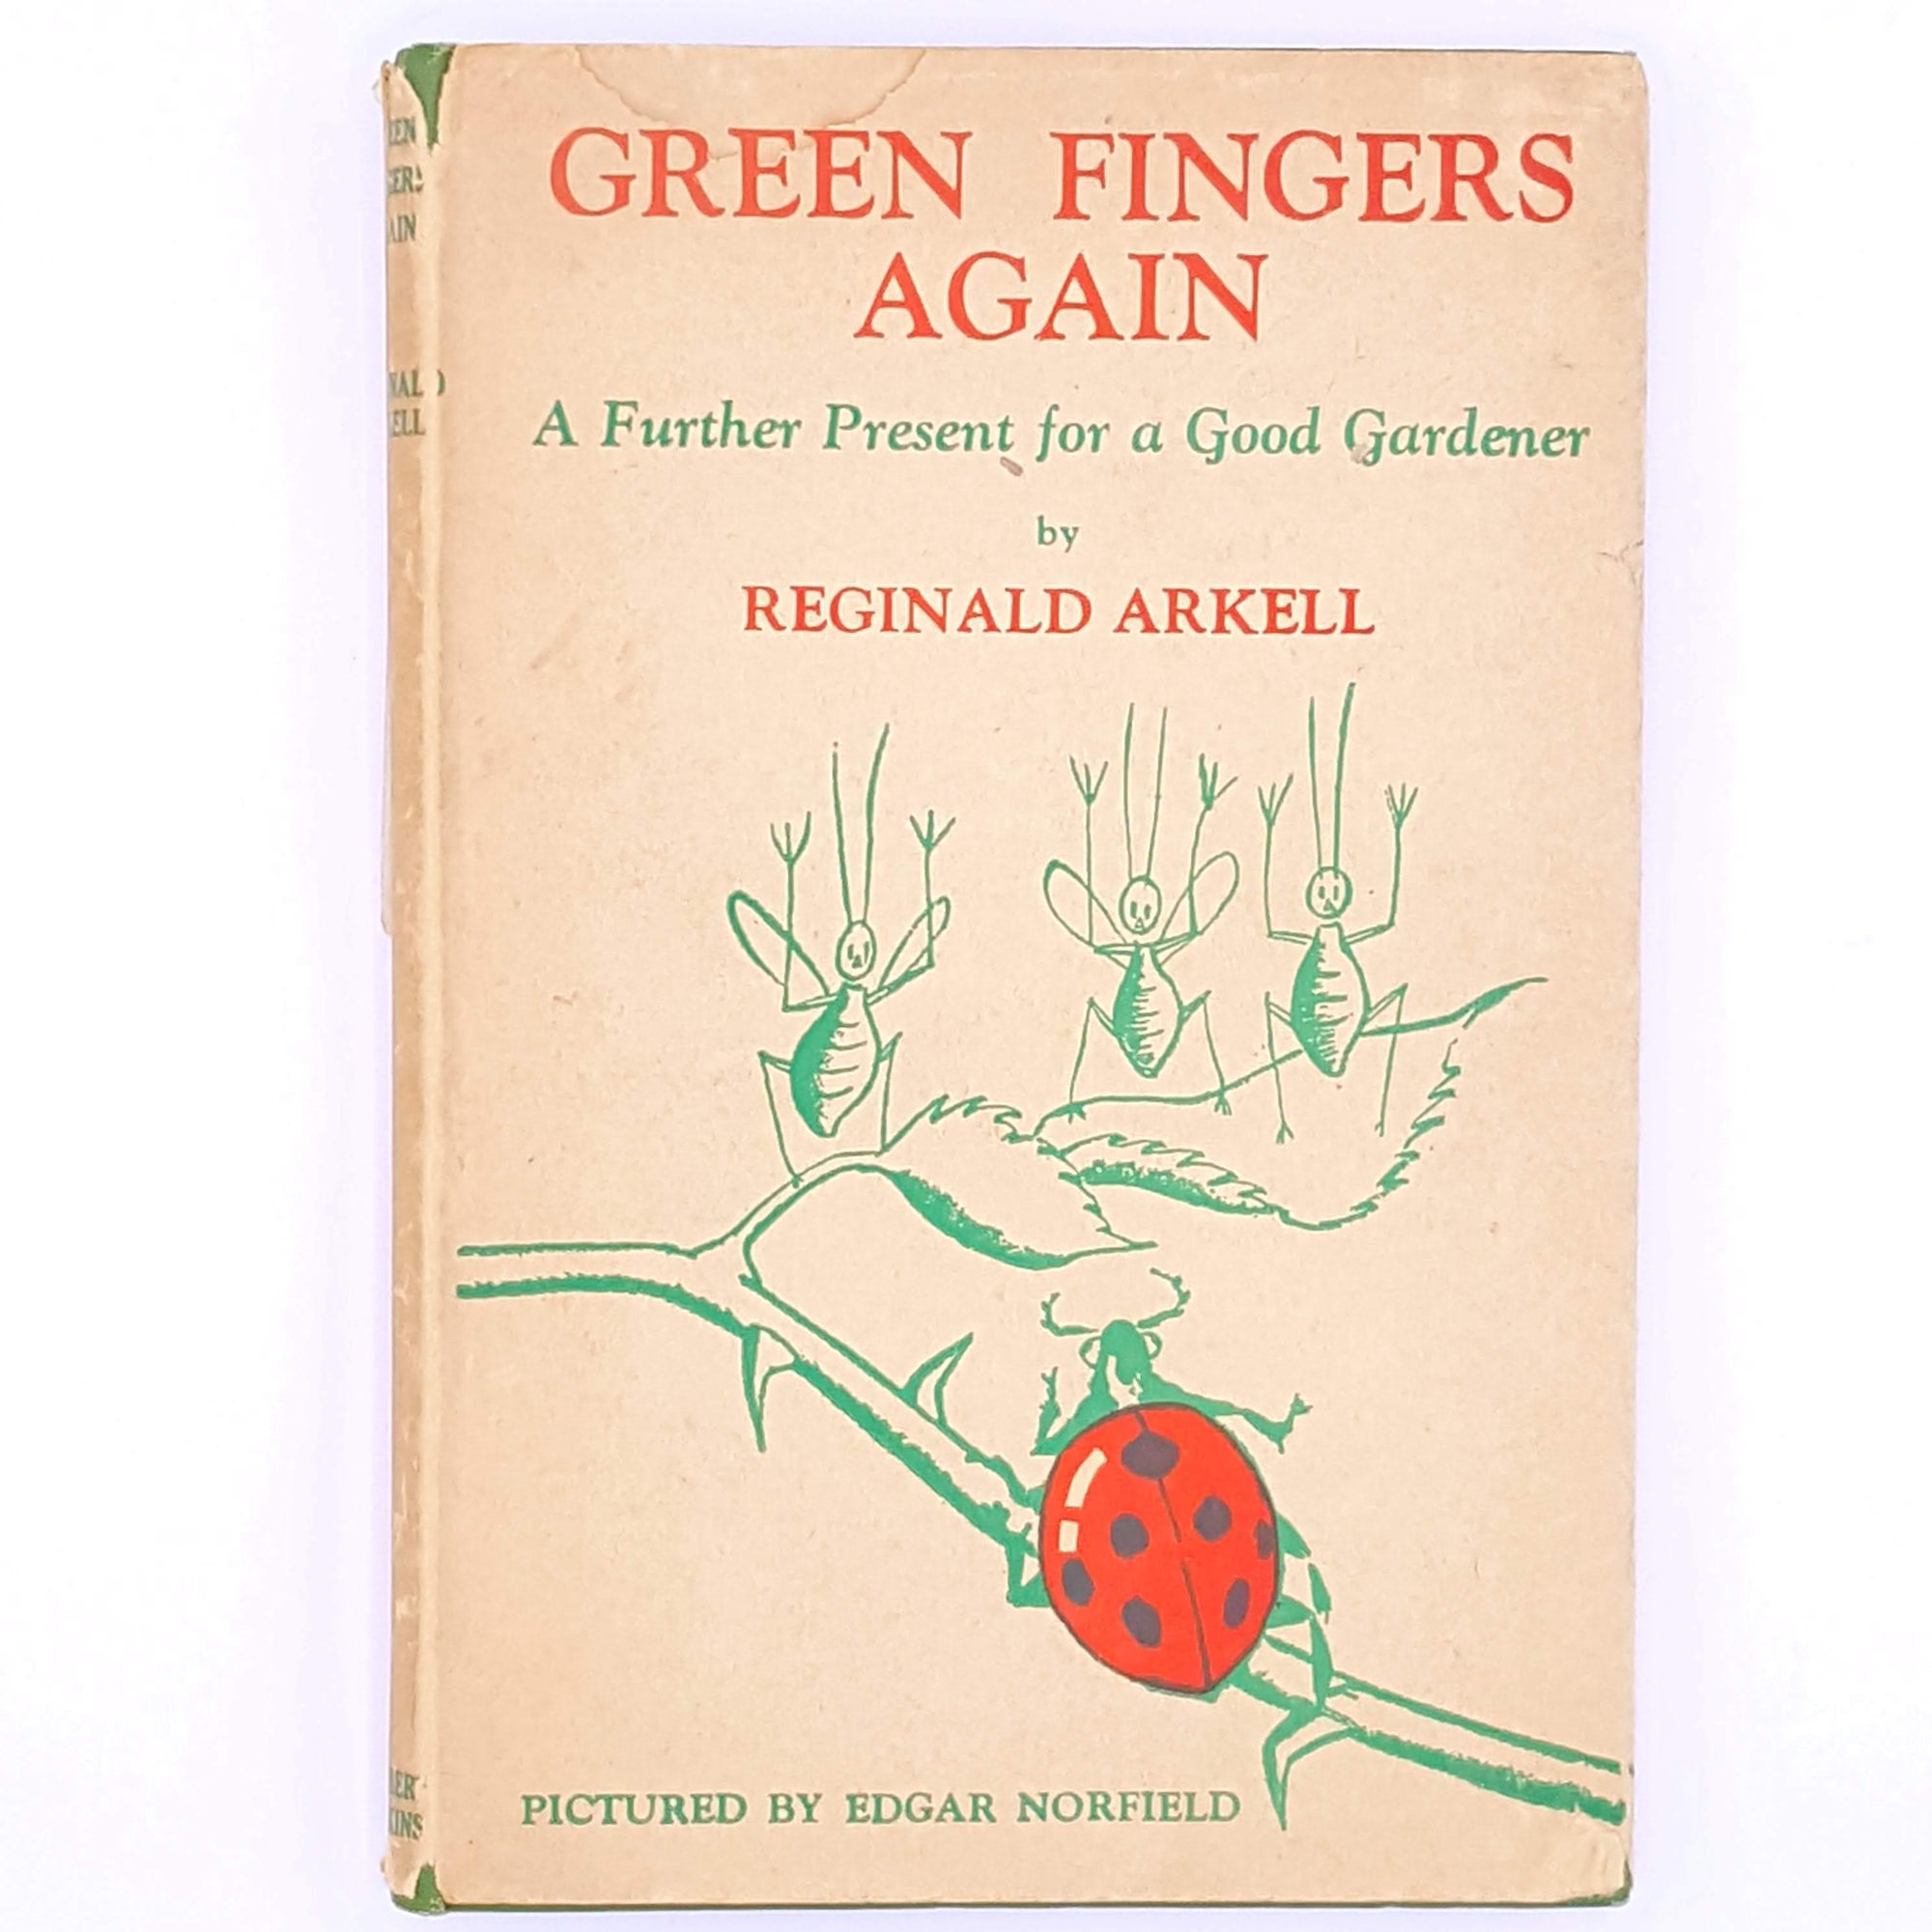 Green Fingers Again, Reginald Arkell, 1948